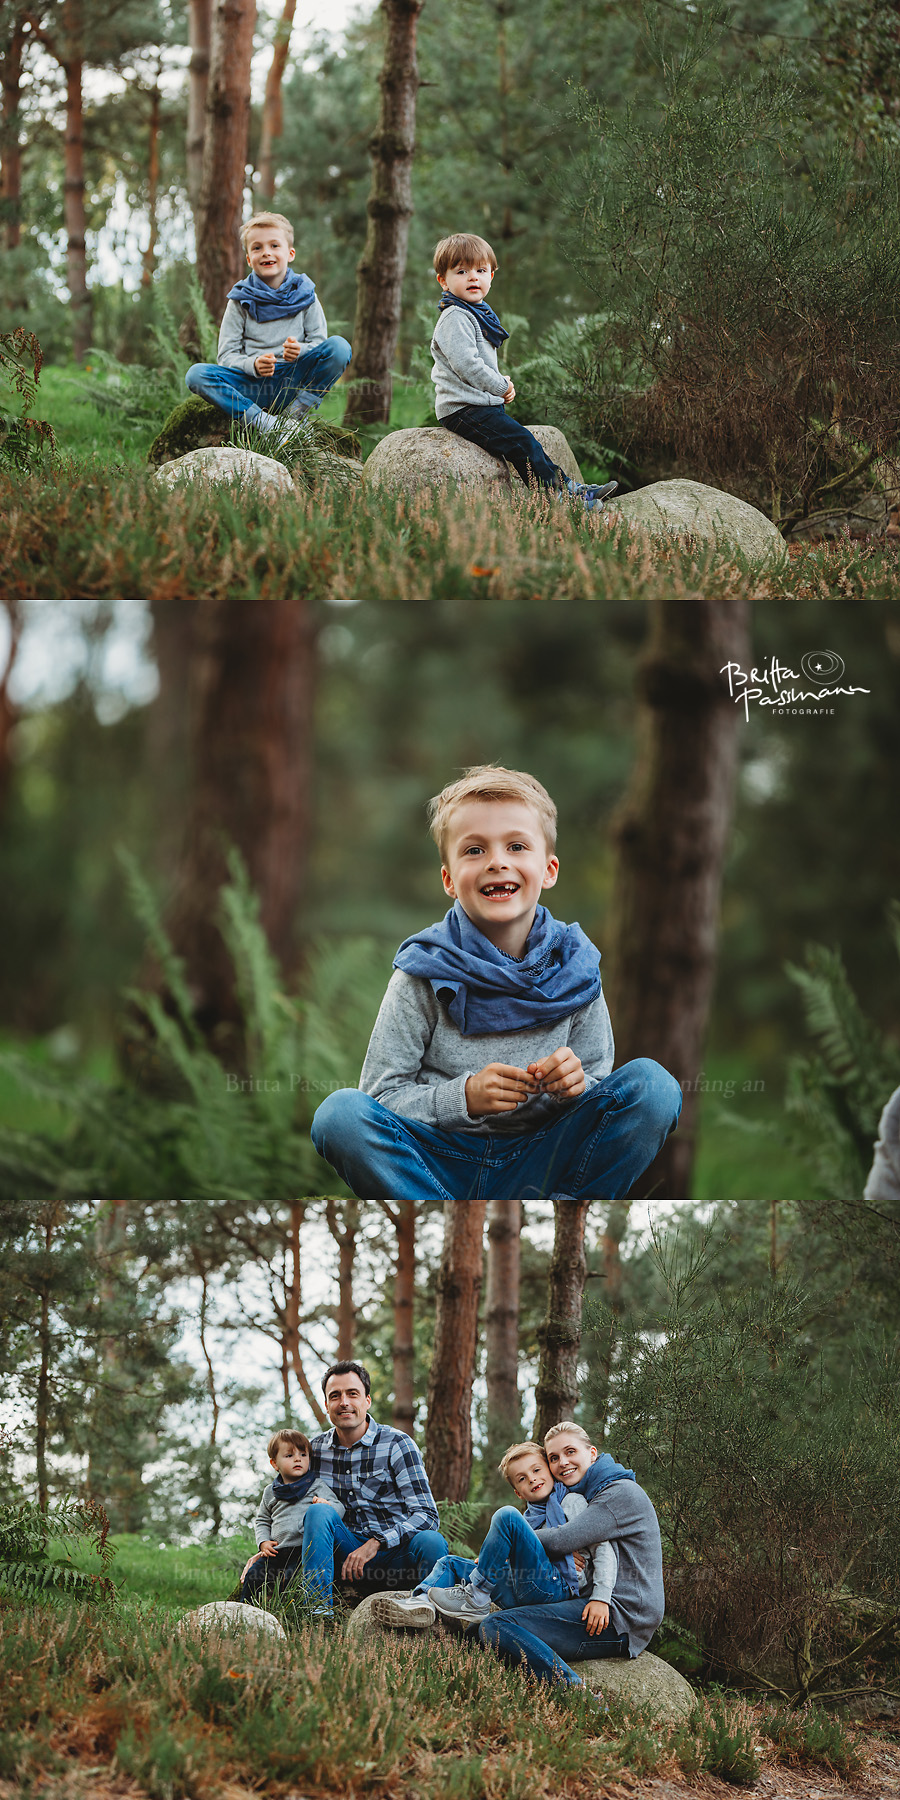 Familienfotos-Dortmund-Fotoshooting-Outdoor-Kinderfotos-Bochum-01